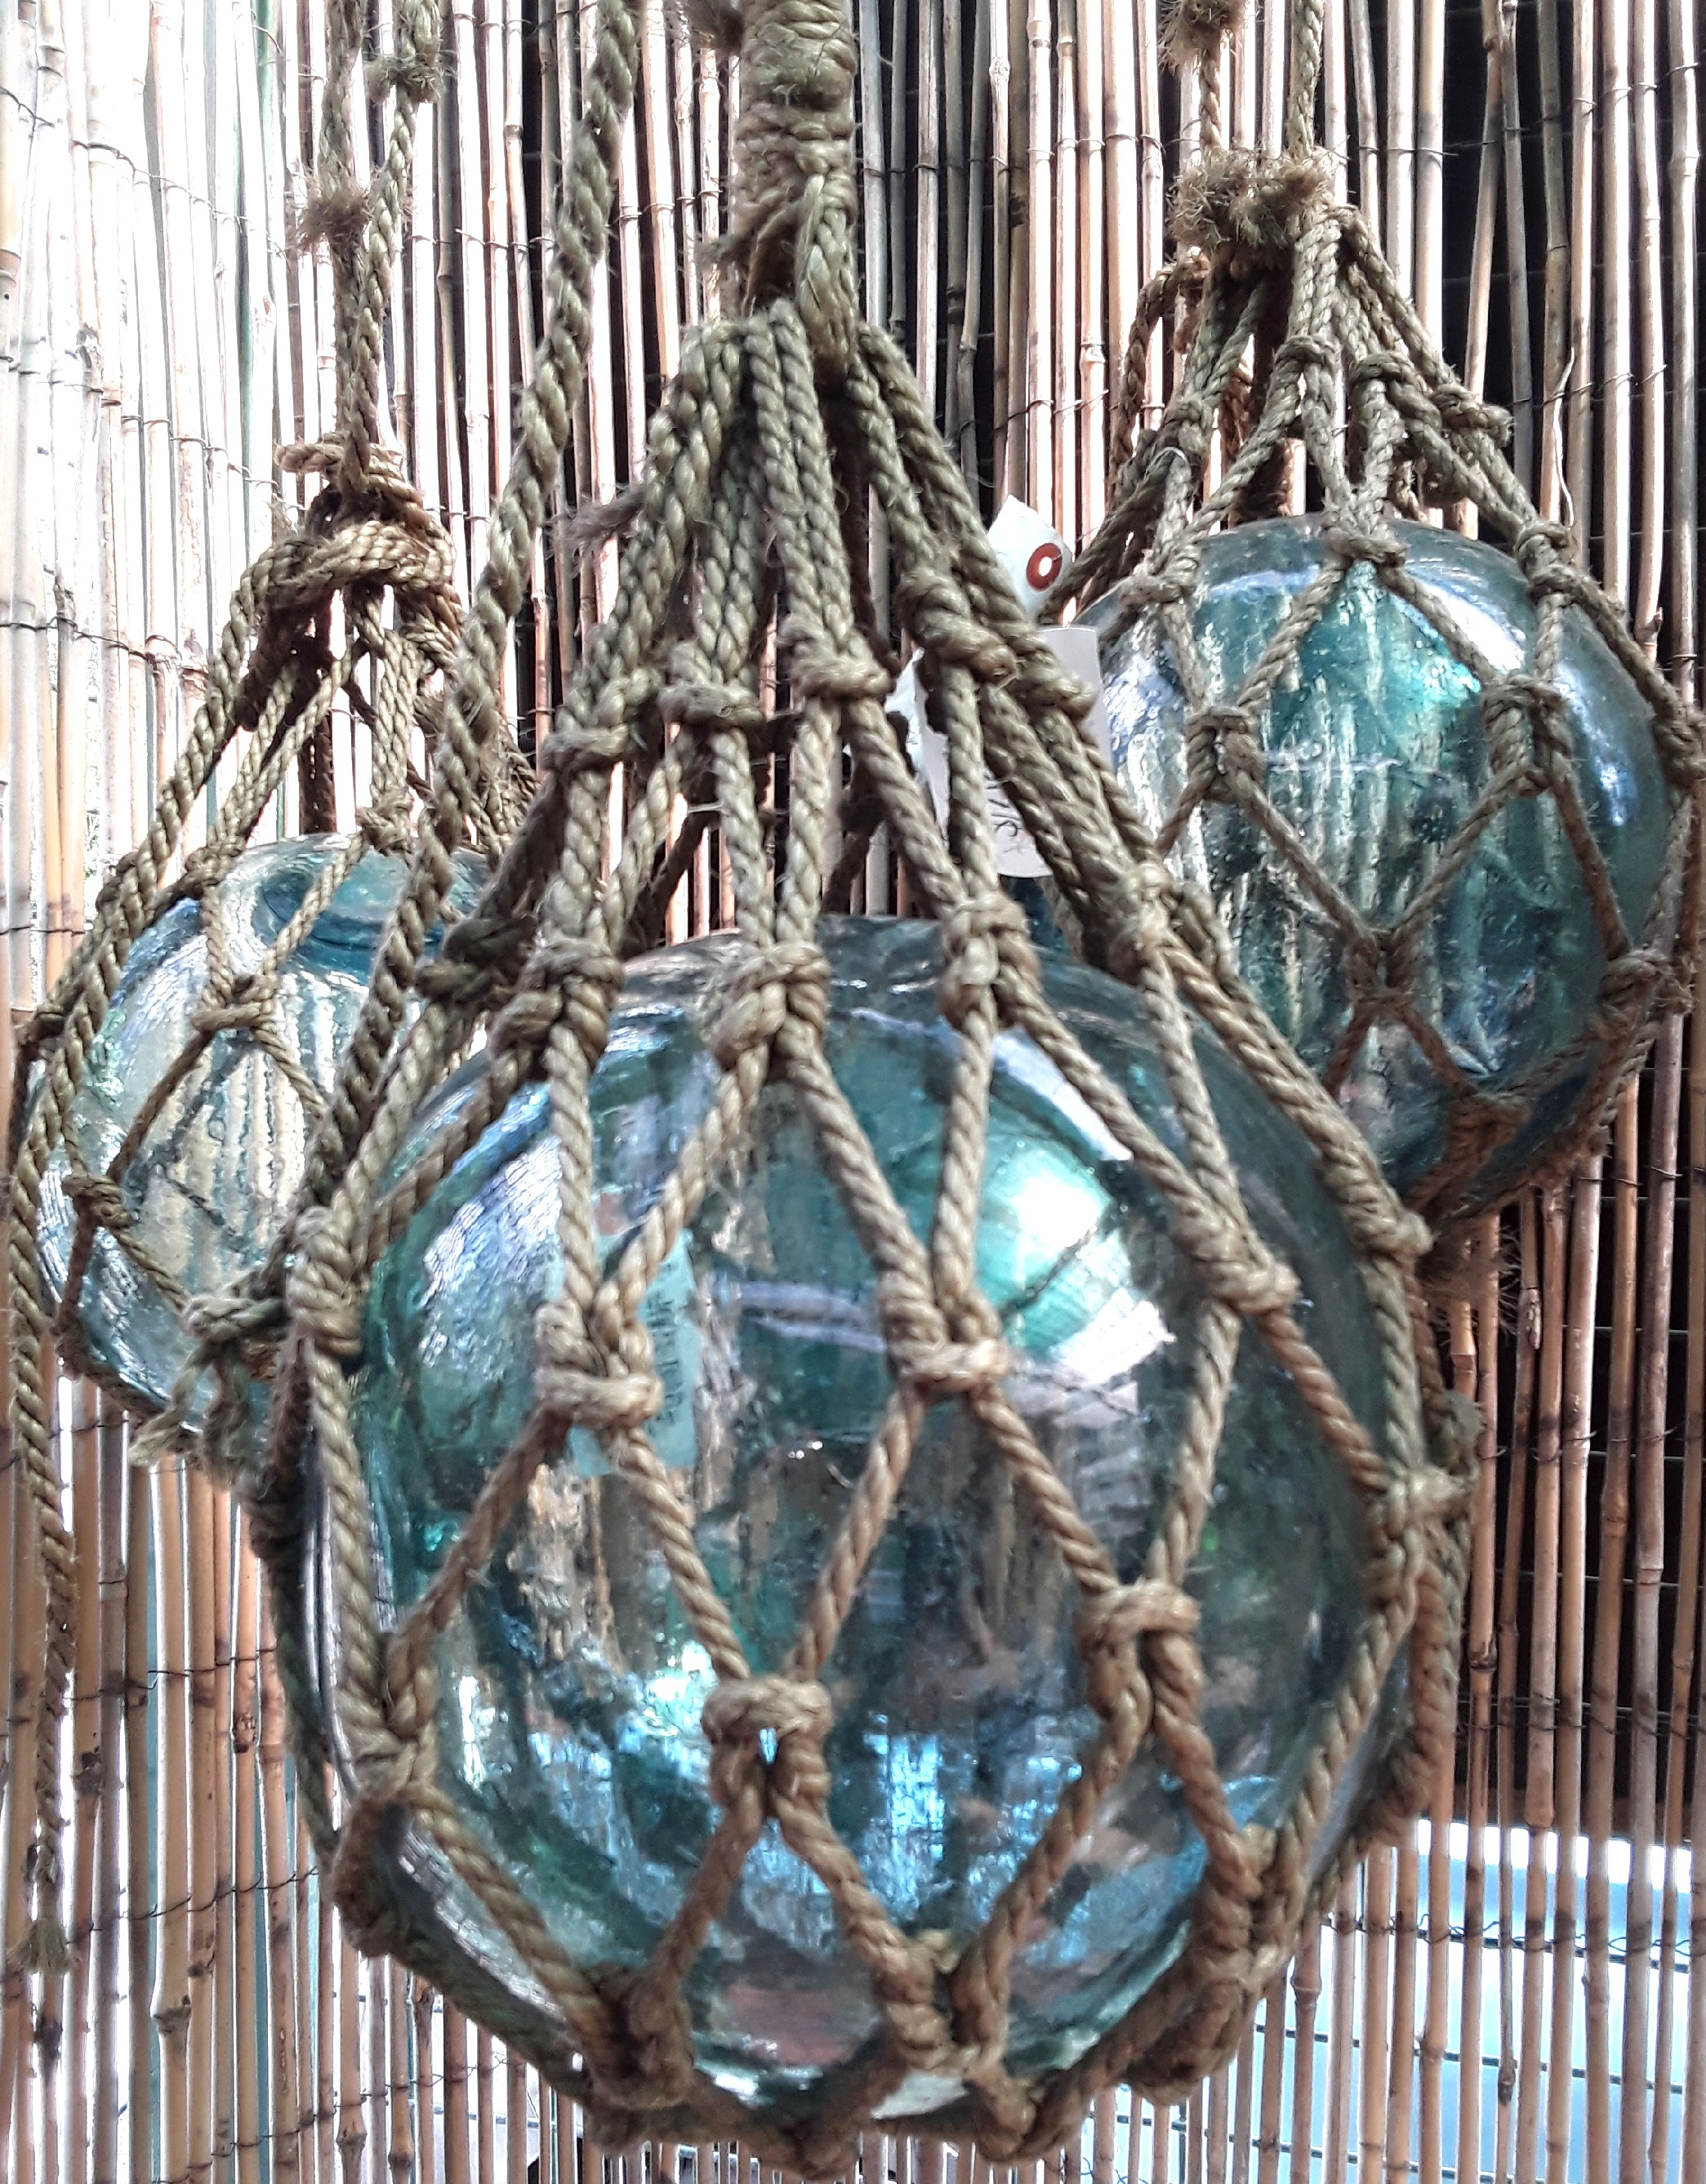 Japanese Glass Floats in Net